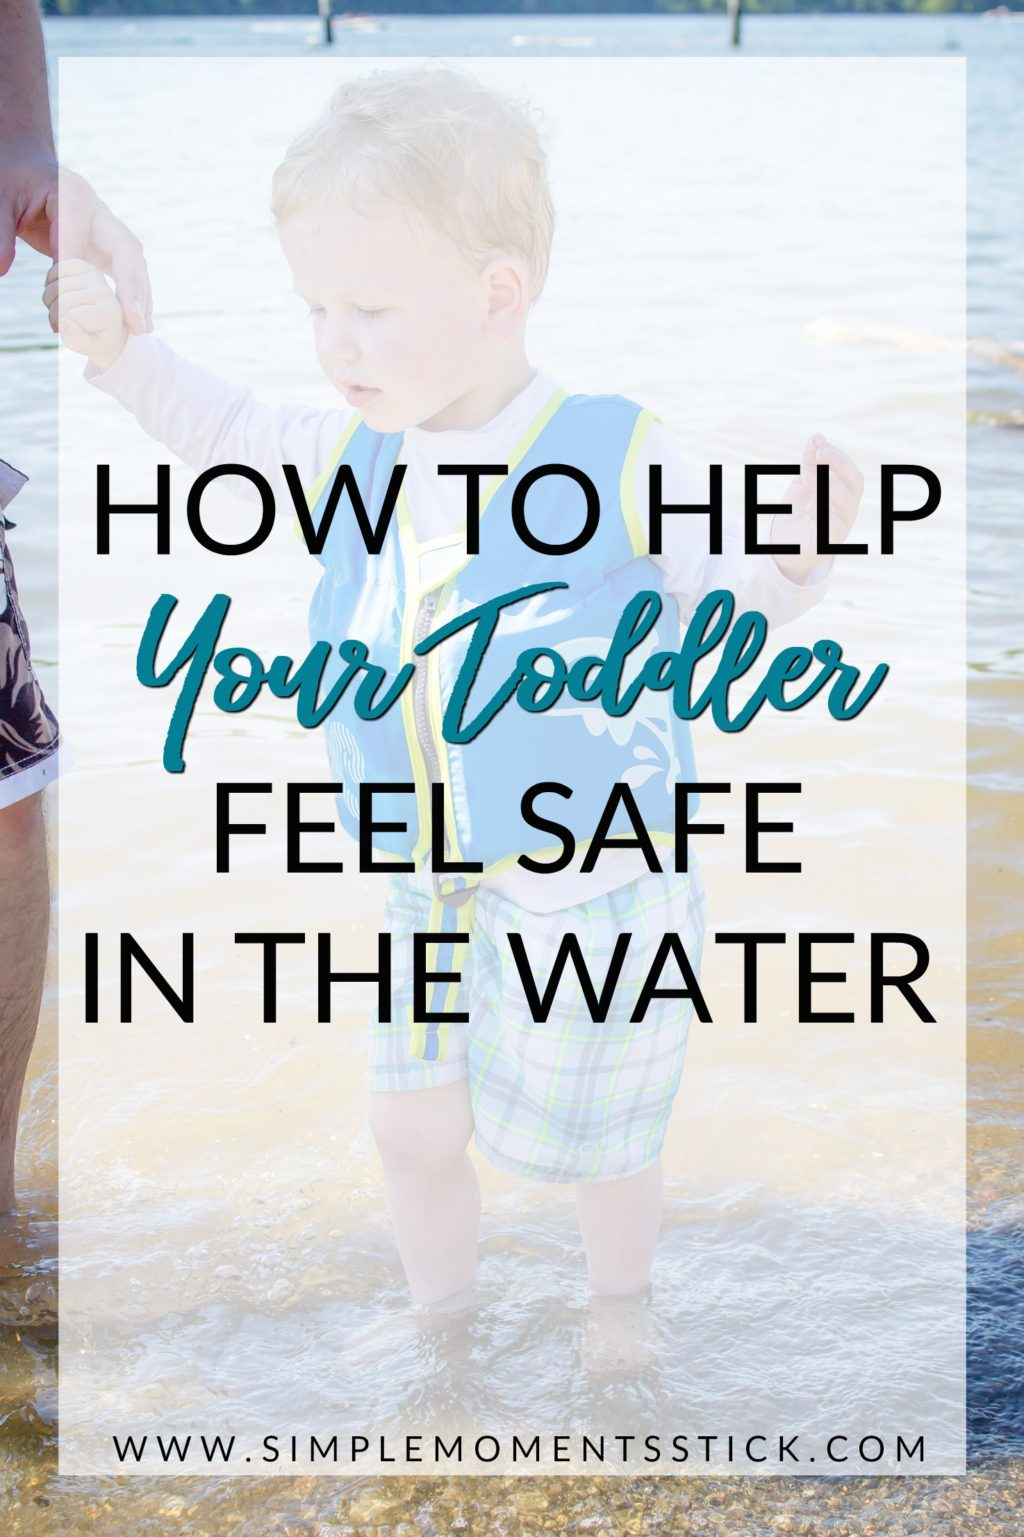 Toddler boy wearing SwimWays vest in the water with text overlay - How to Help Your Toddler Feel Safe in the Water